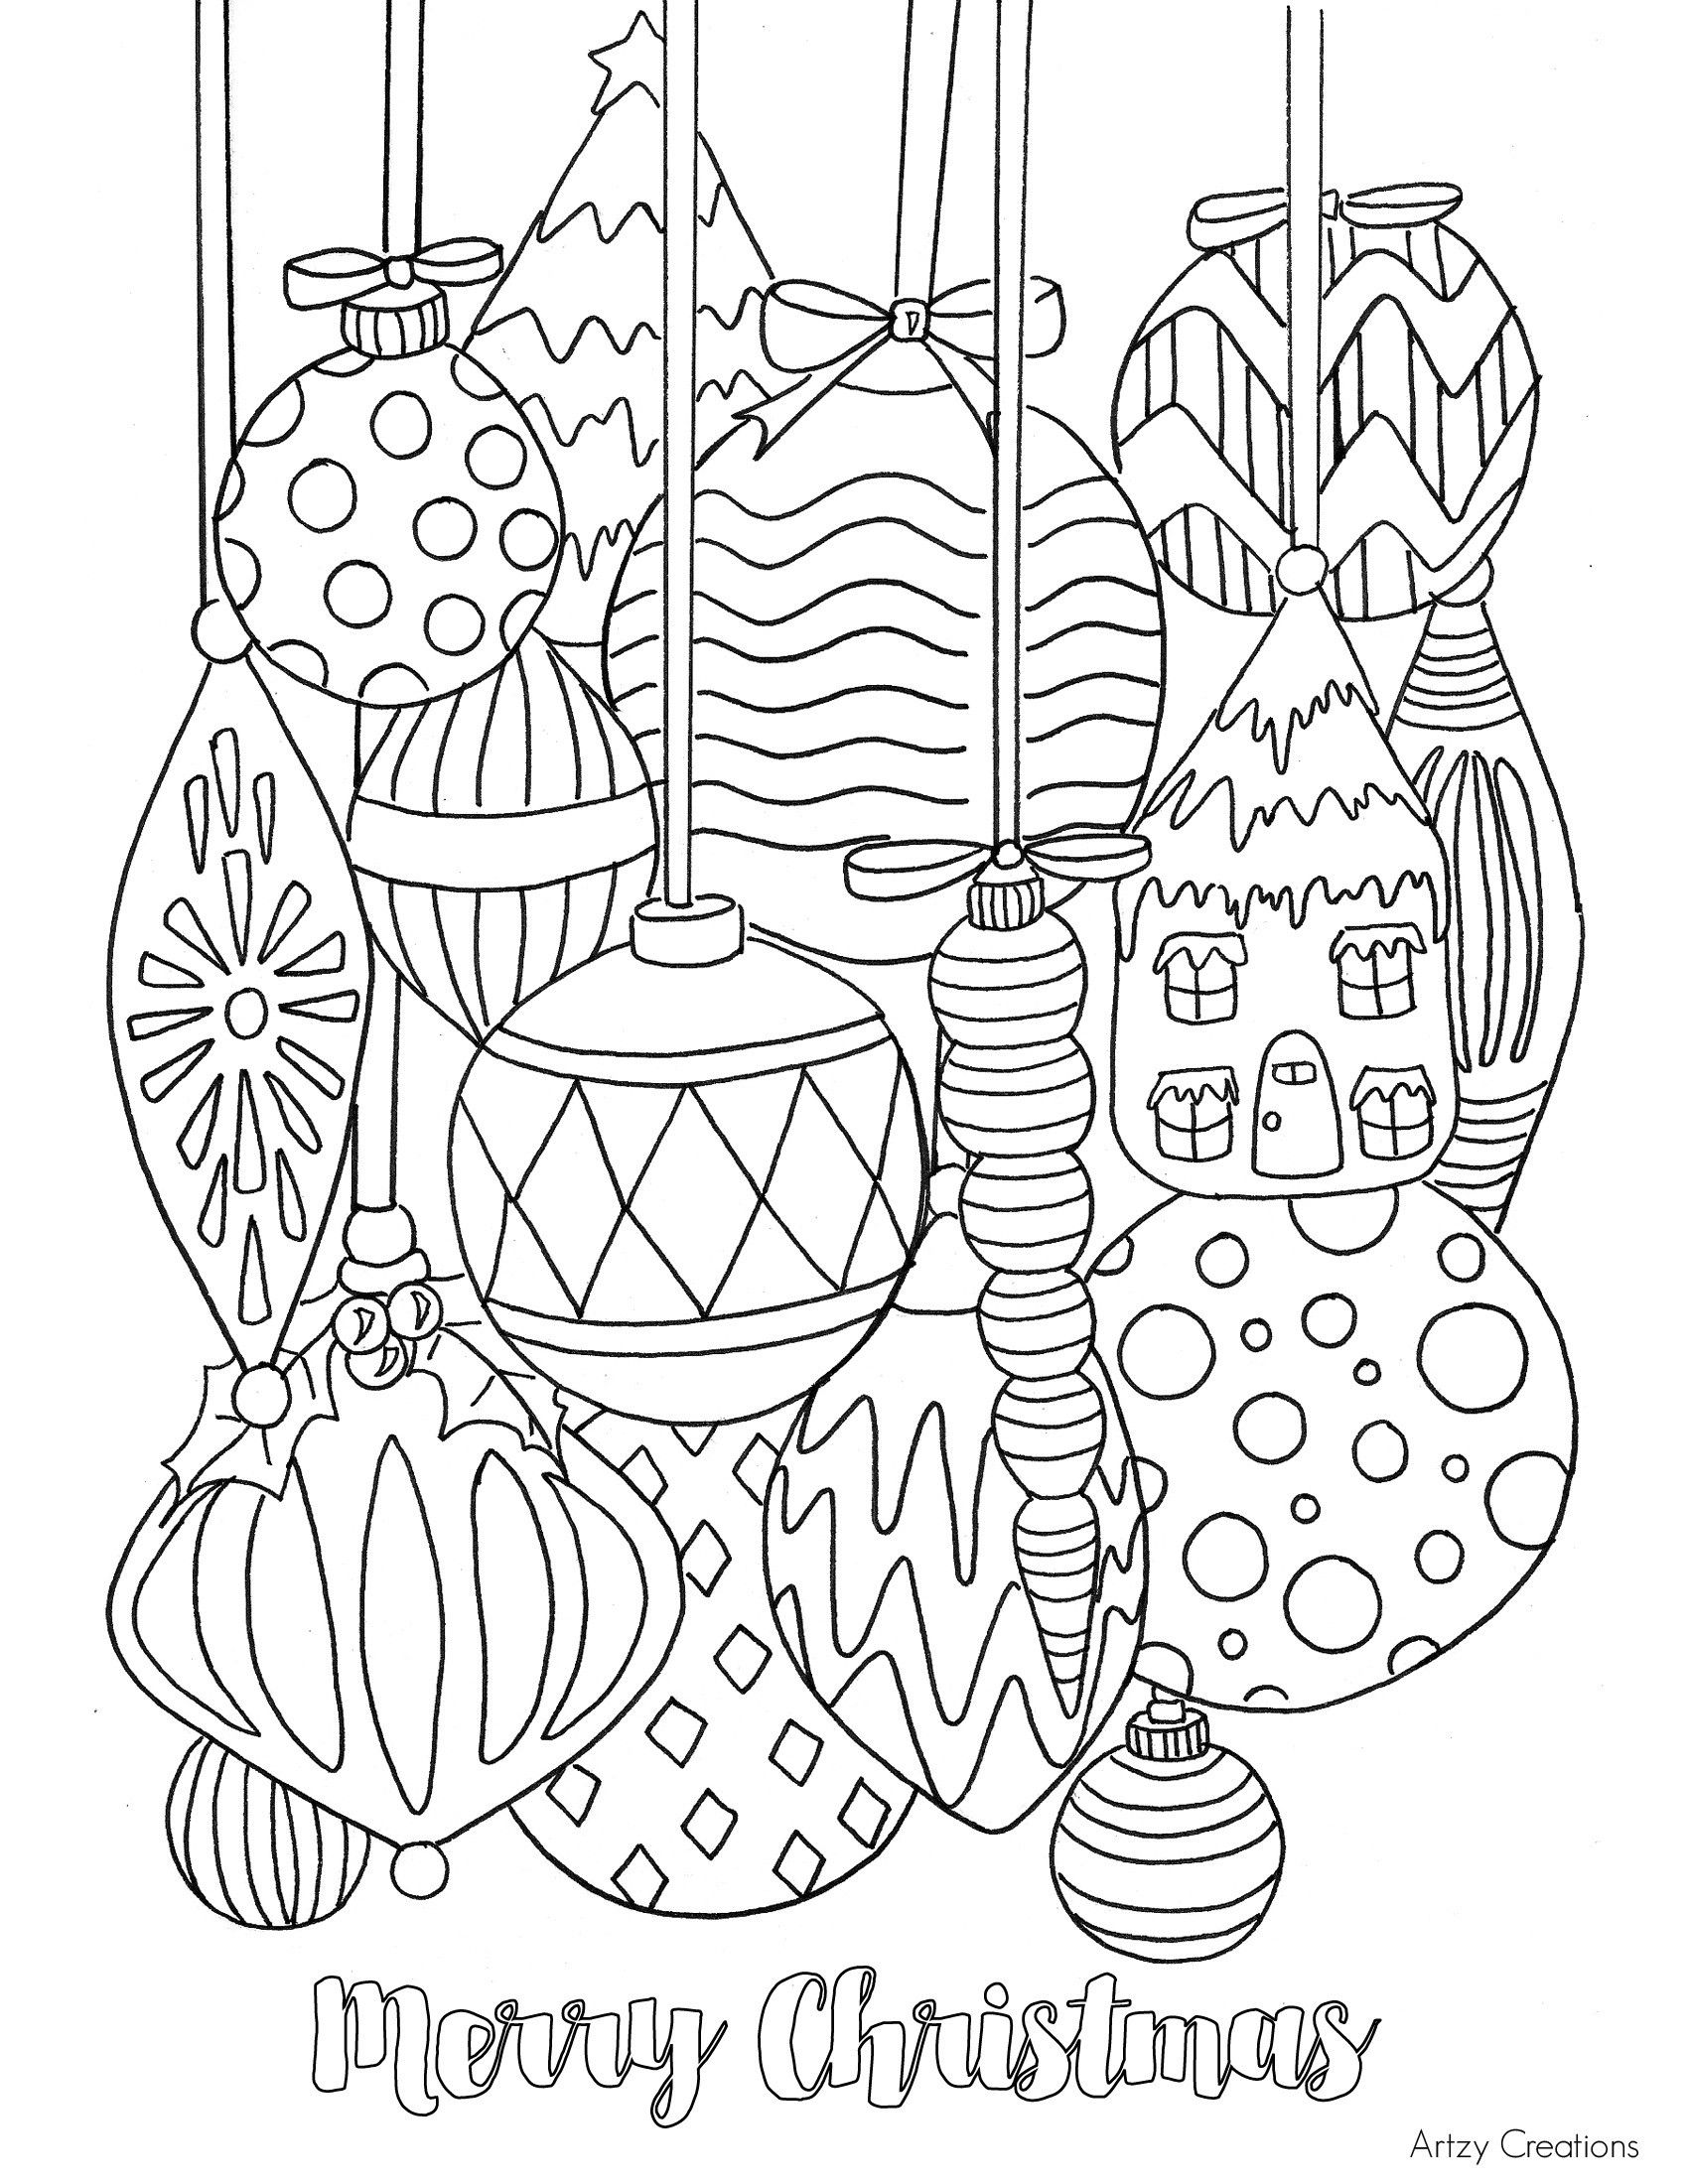 Full Page Free Printable Christmas Coloring Pages For Adults ...